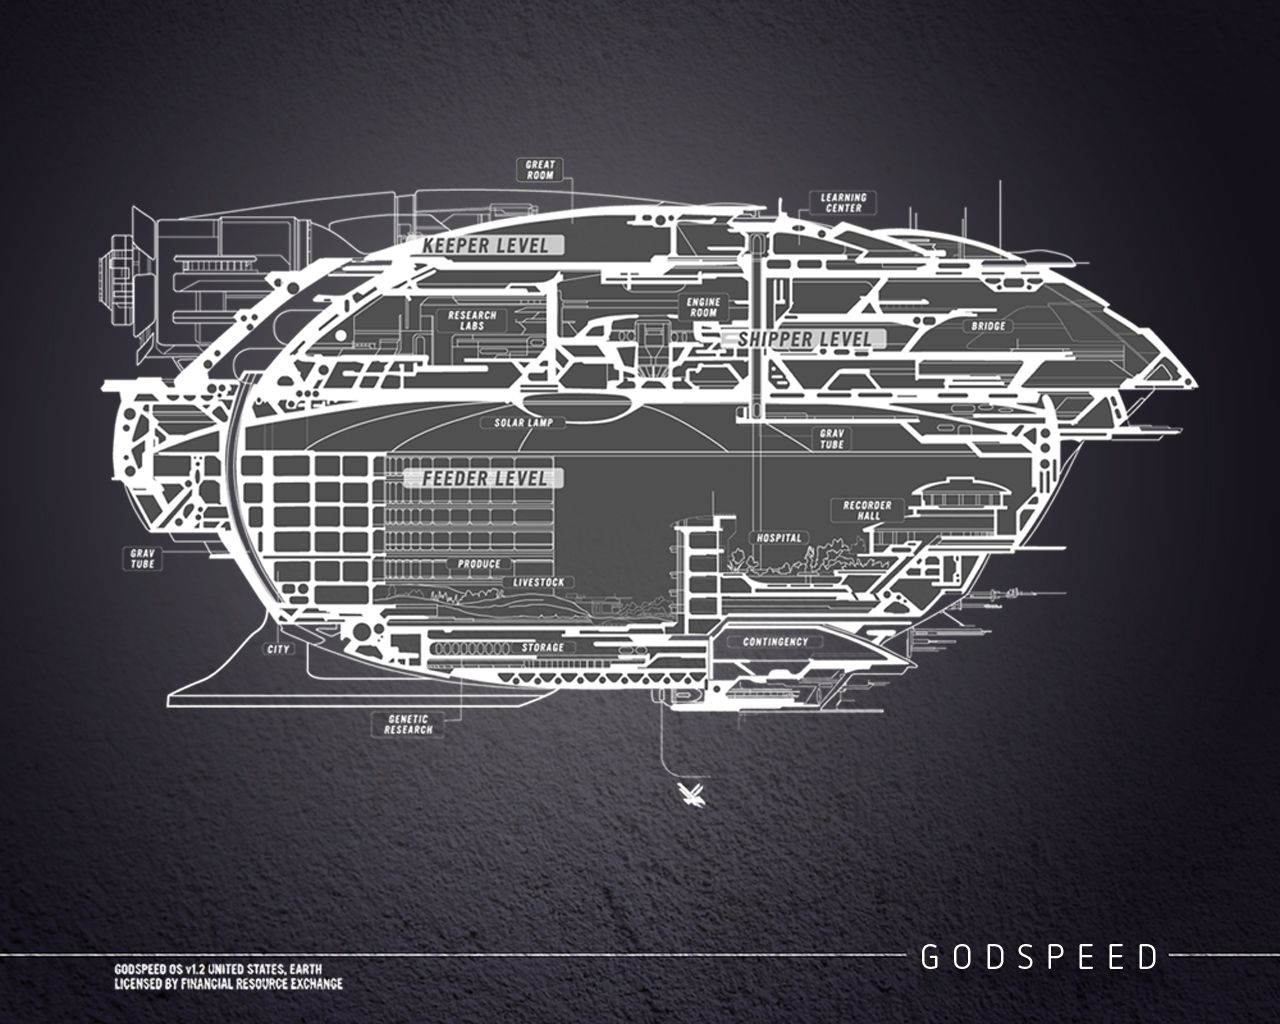 Blueprints for the godspeed spaceship in the across the universe blueprints for the godspeed spaceship in the across the universe series by beth revis malvernweather Images